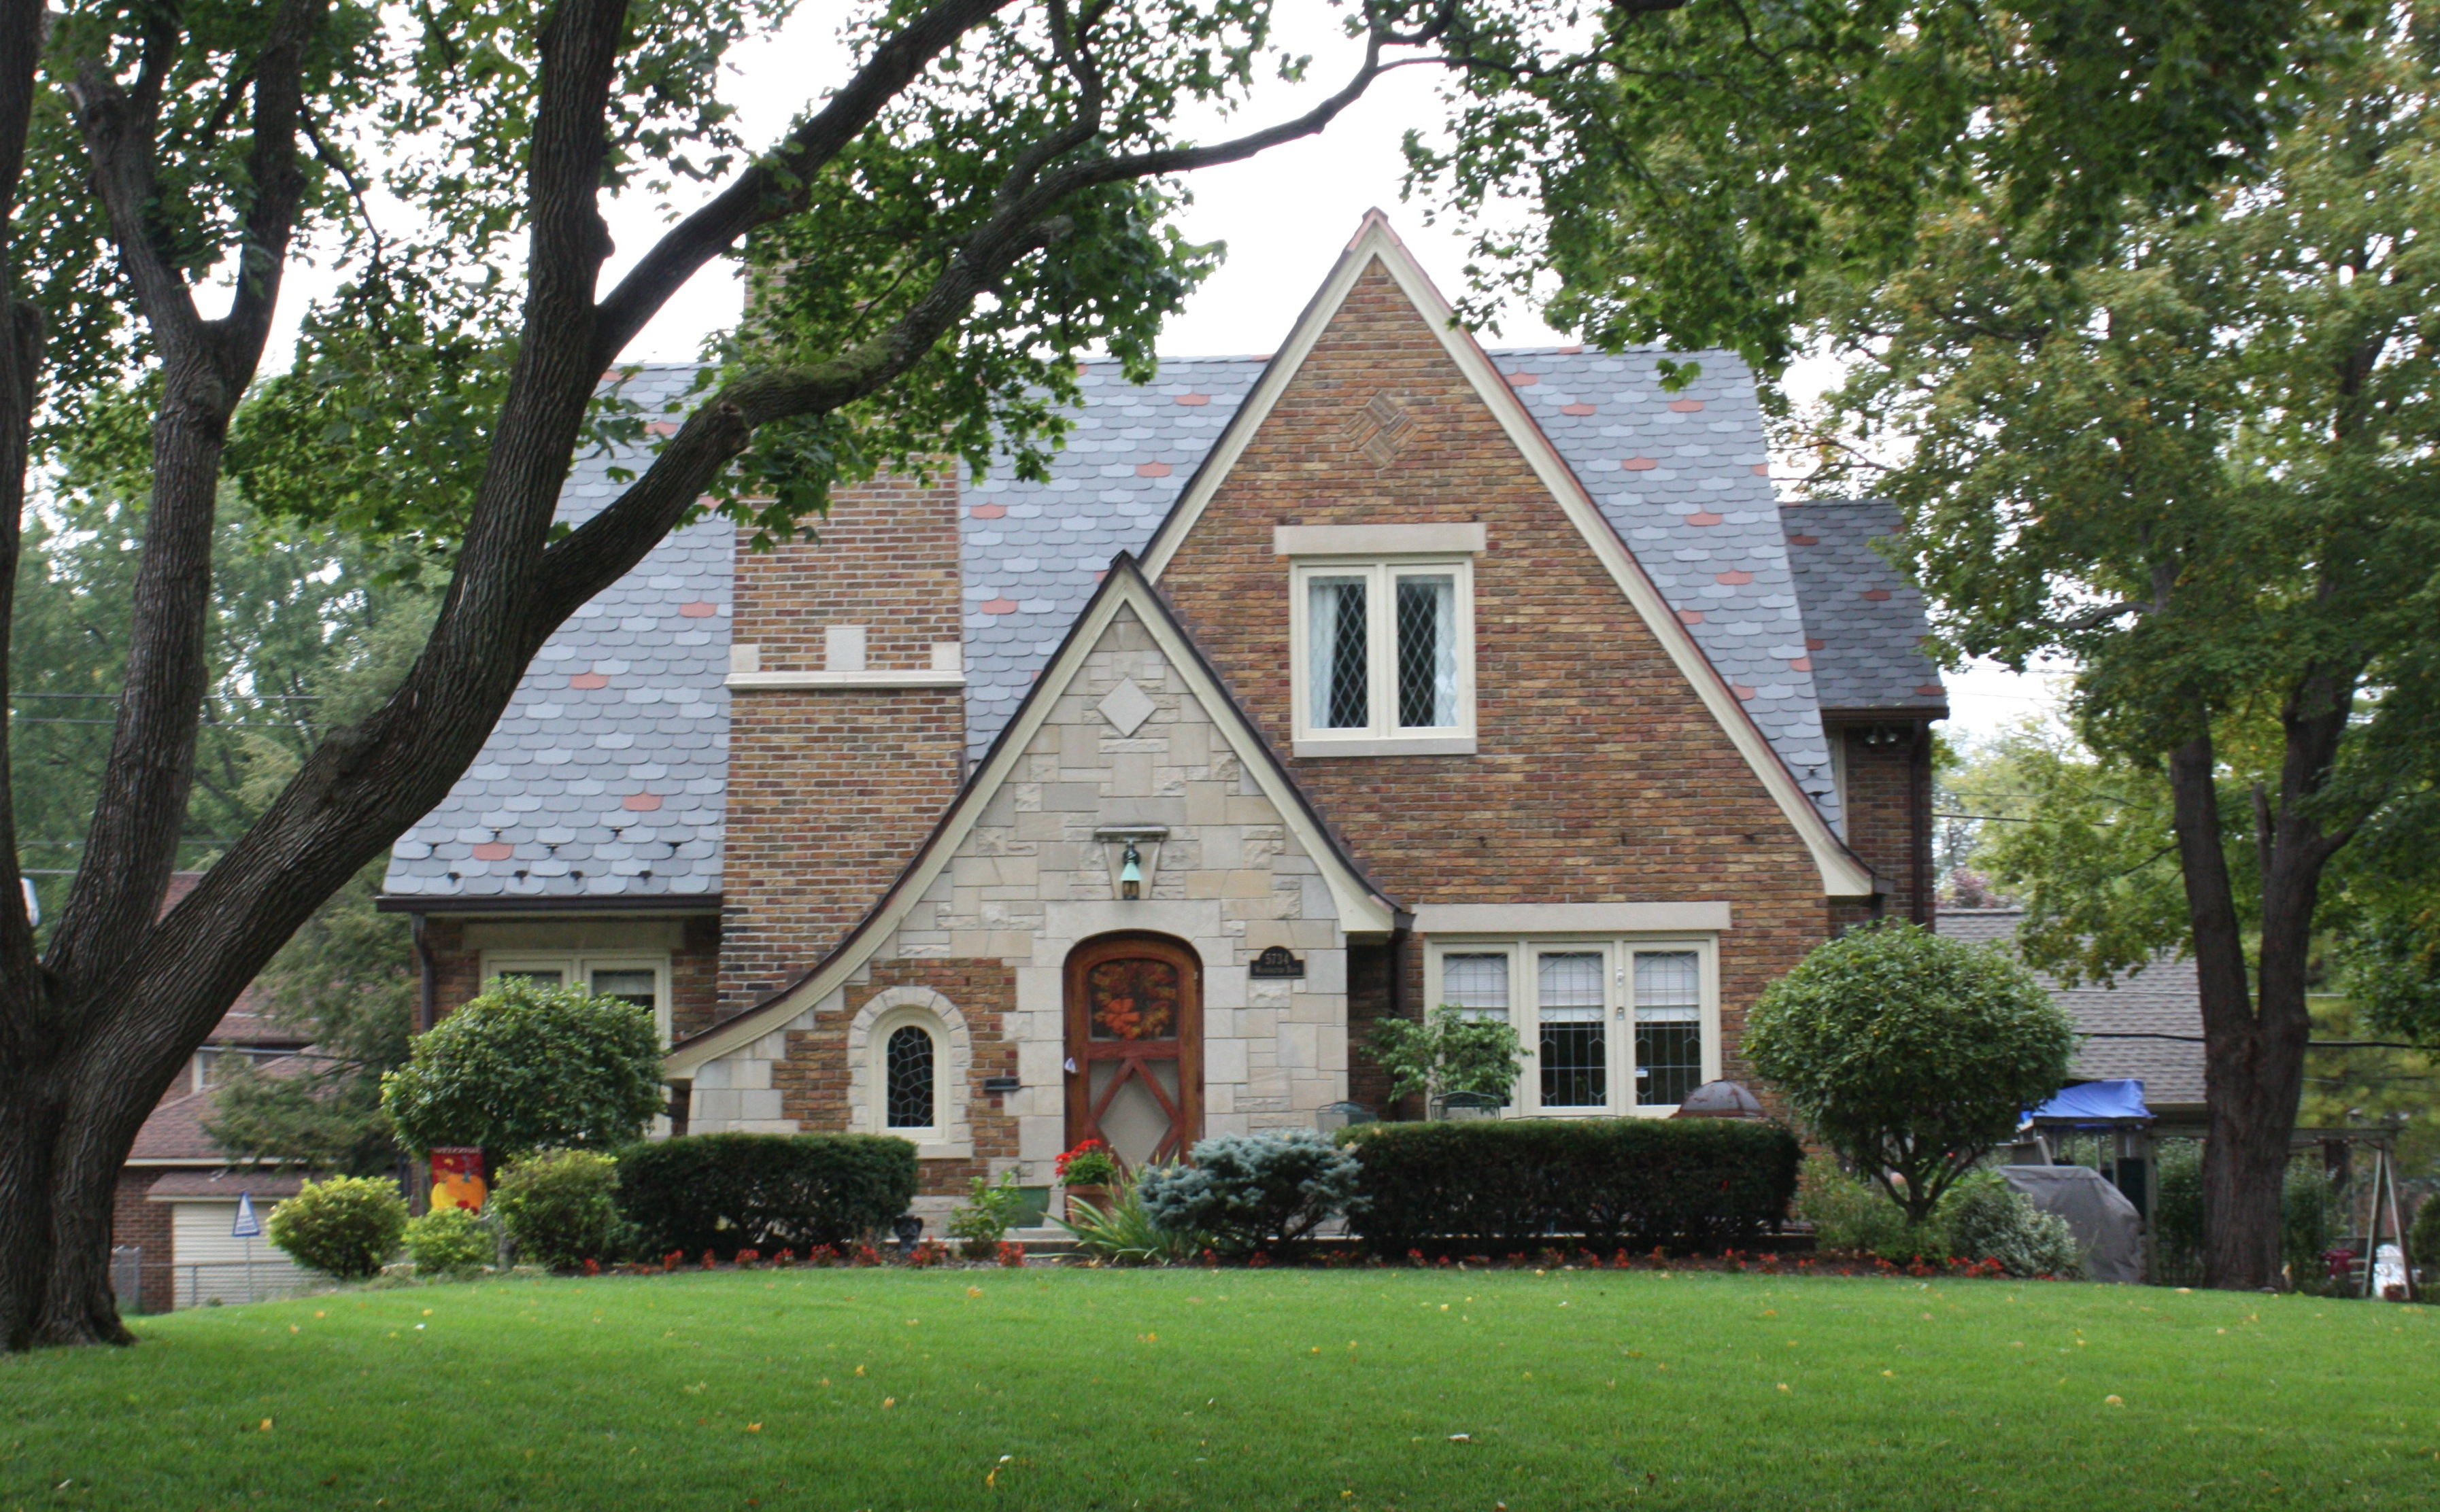 Building Language: Tudor Revival